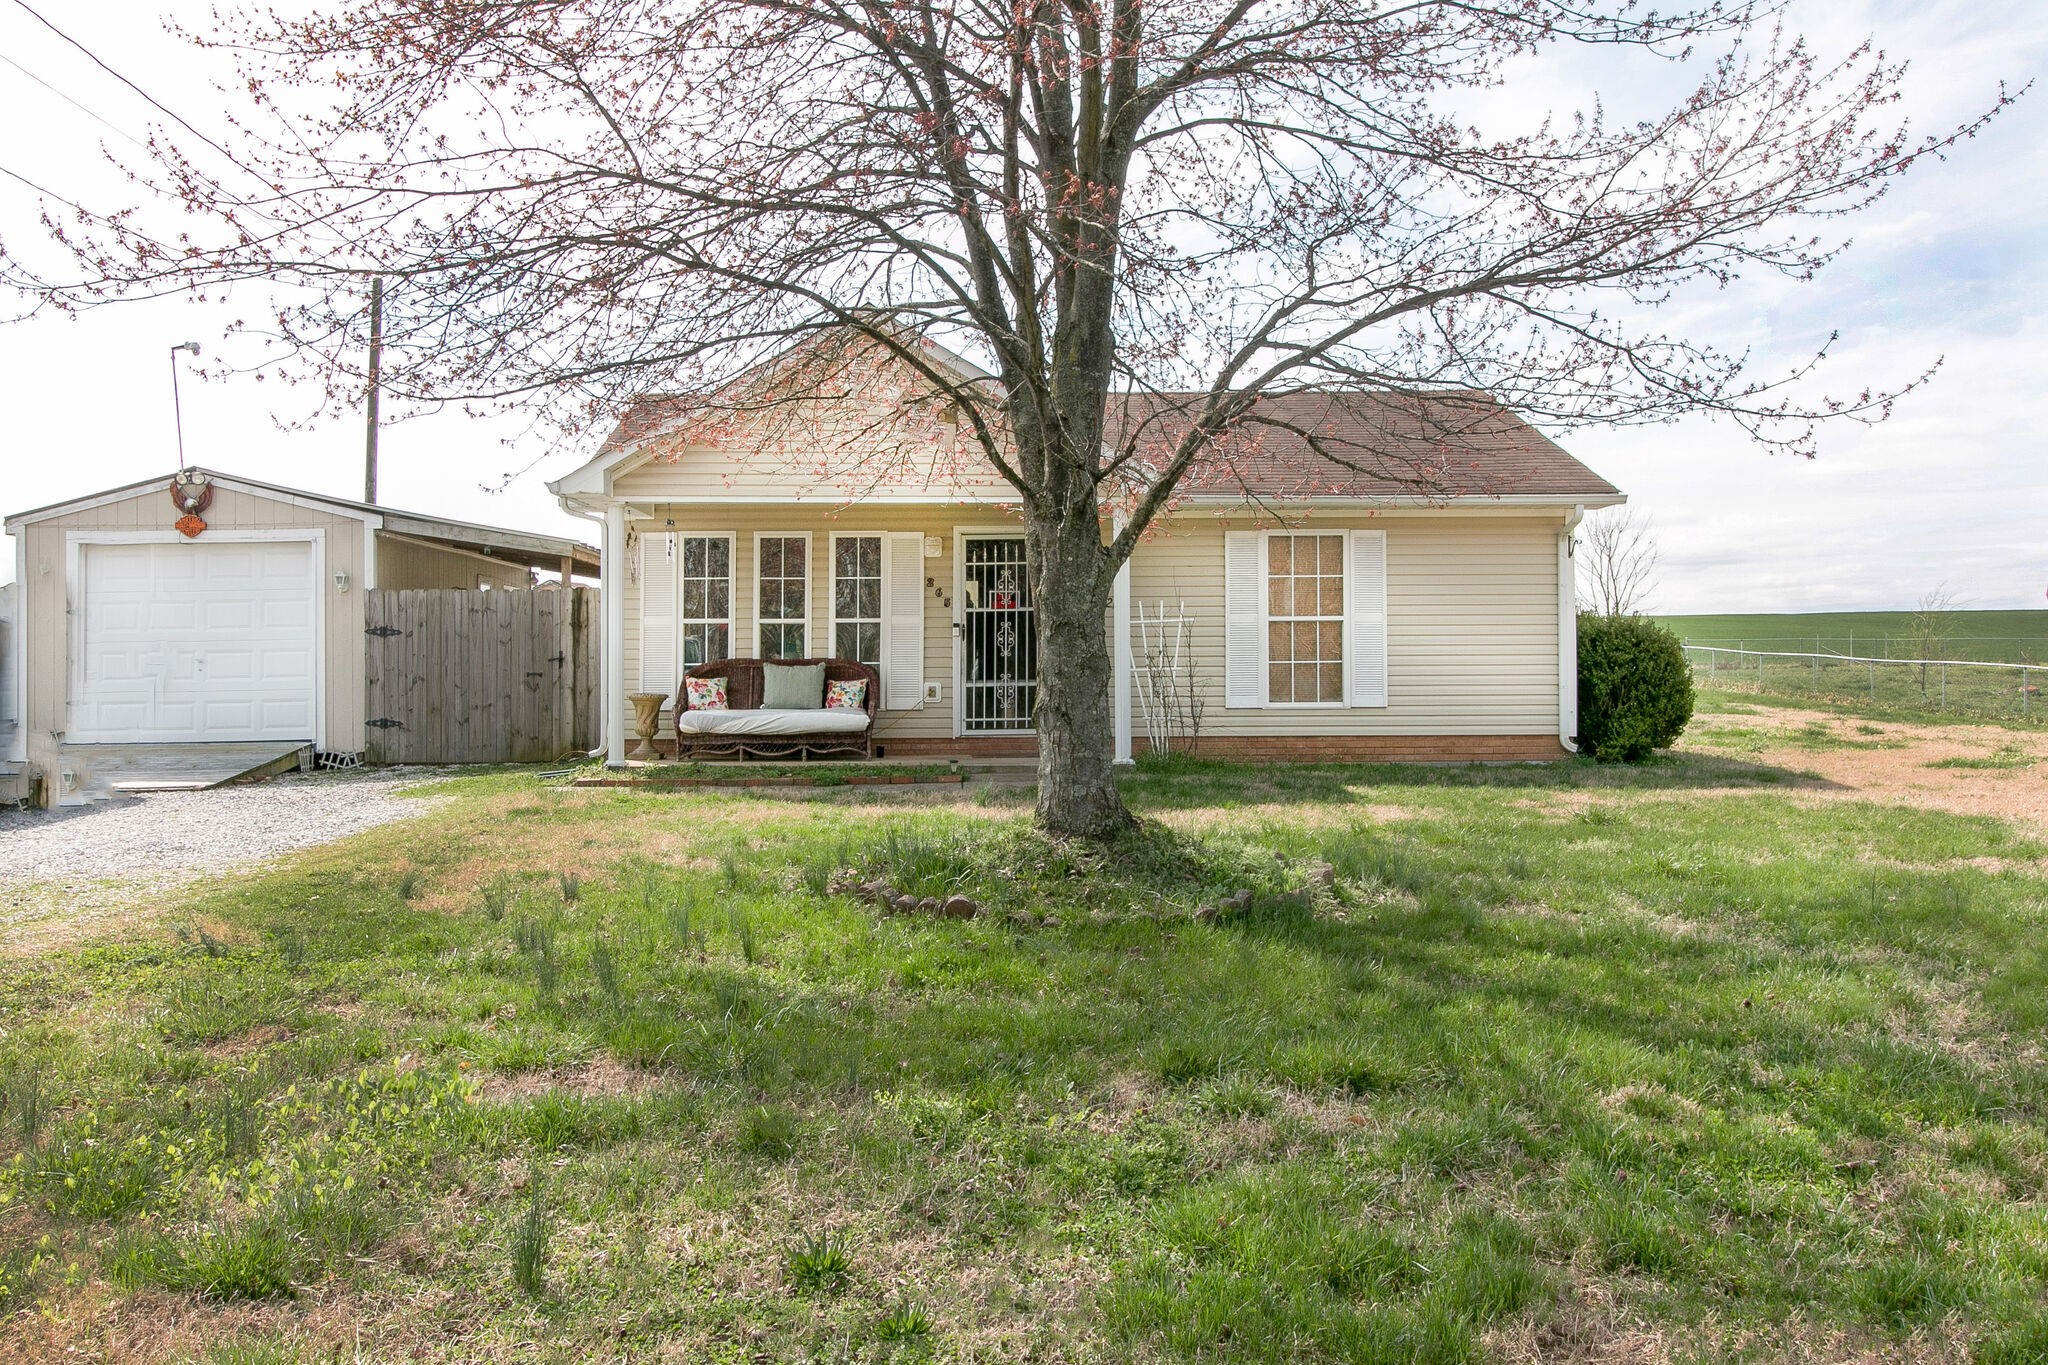 265 Bumpus Mills rd Property Photo - Oak Grove, KY real estate listing